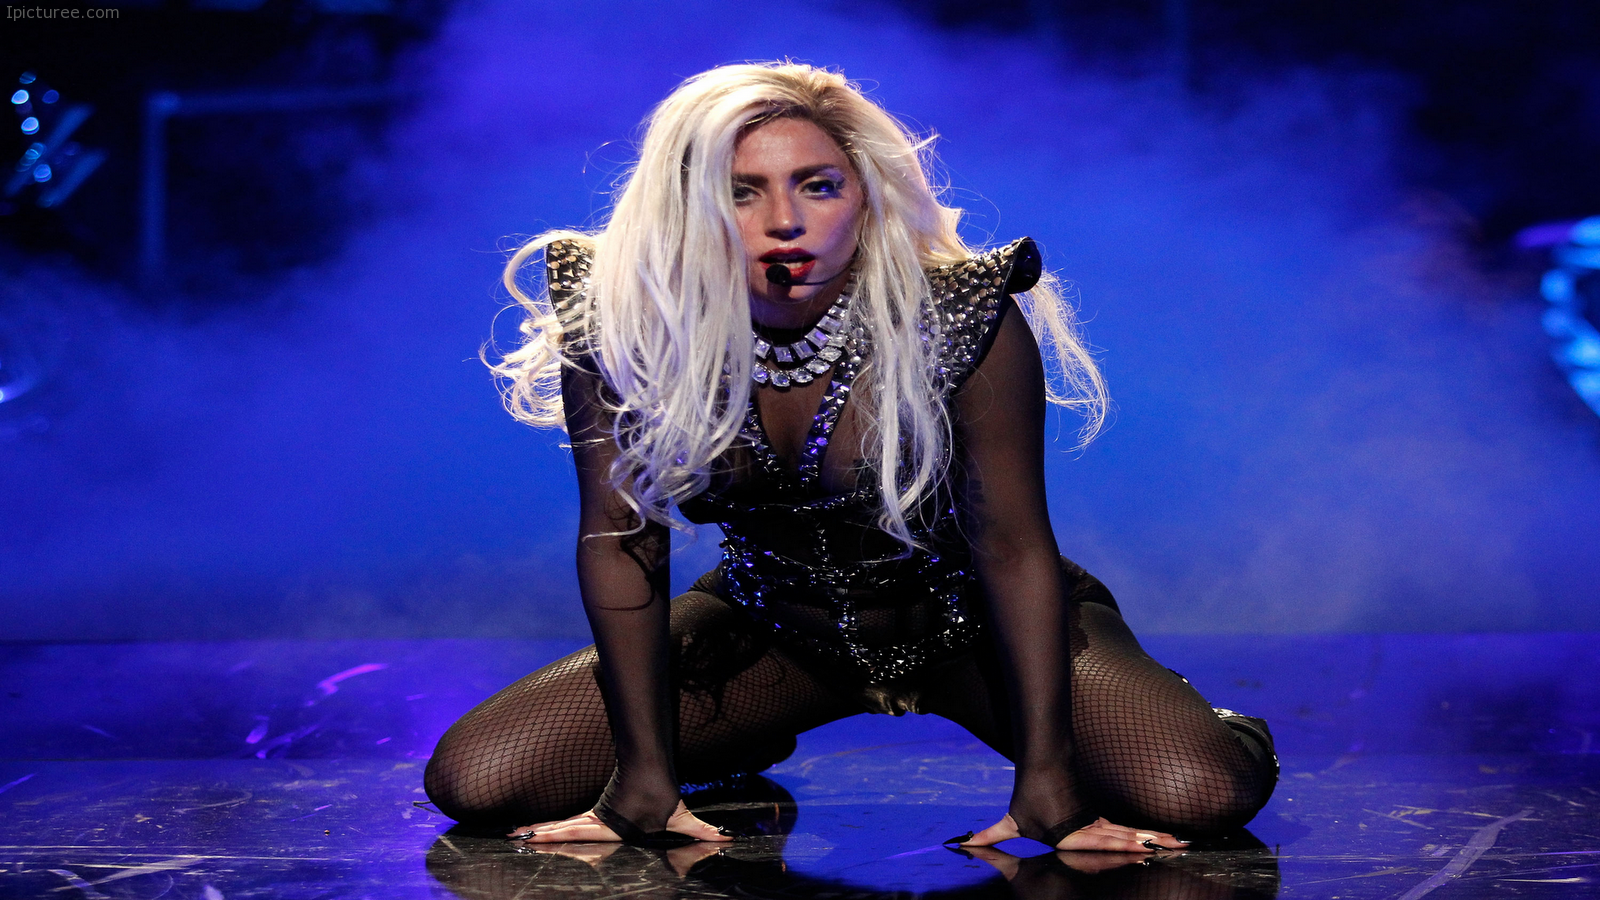 Lady Gaga Live Concert Performance Wallpaper